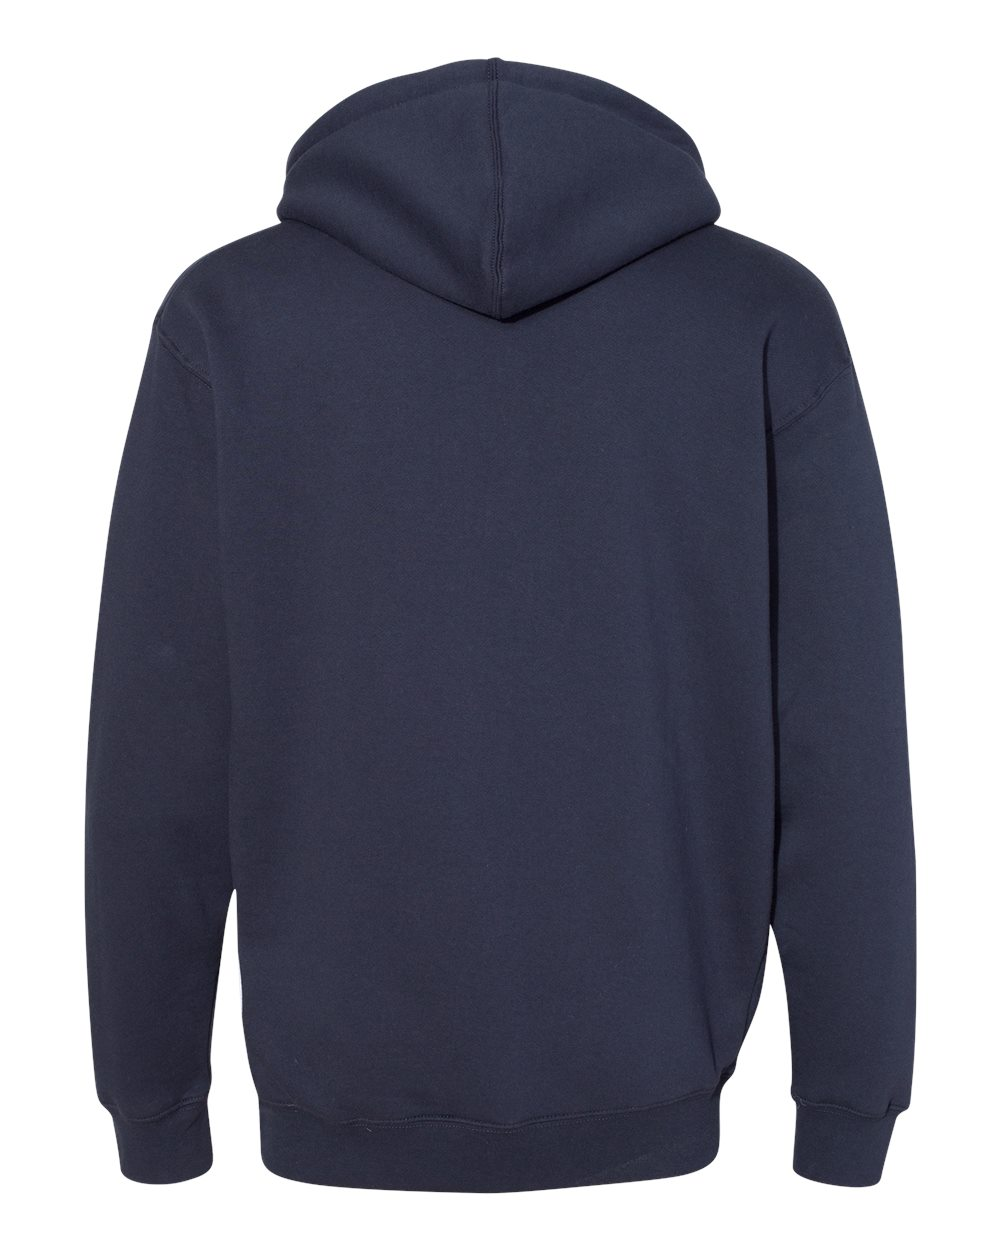 Independent-Trading-Co-Mens-Hooded-Pullover-Sweatshirt-IND4000-up-to-3XL miniature 79